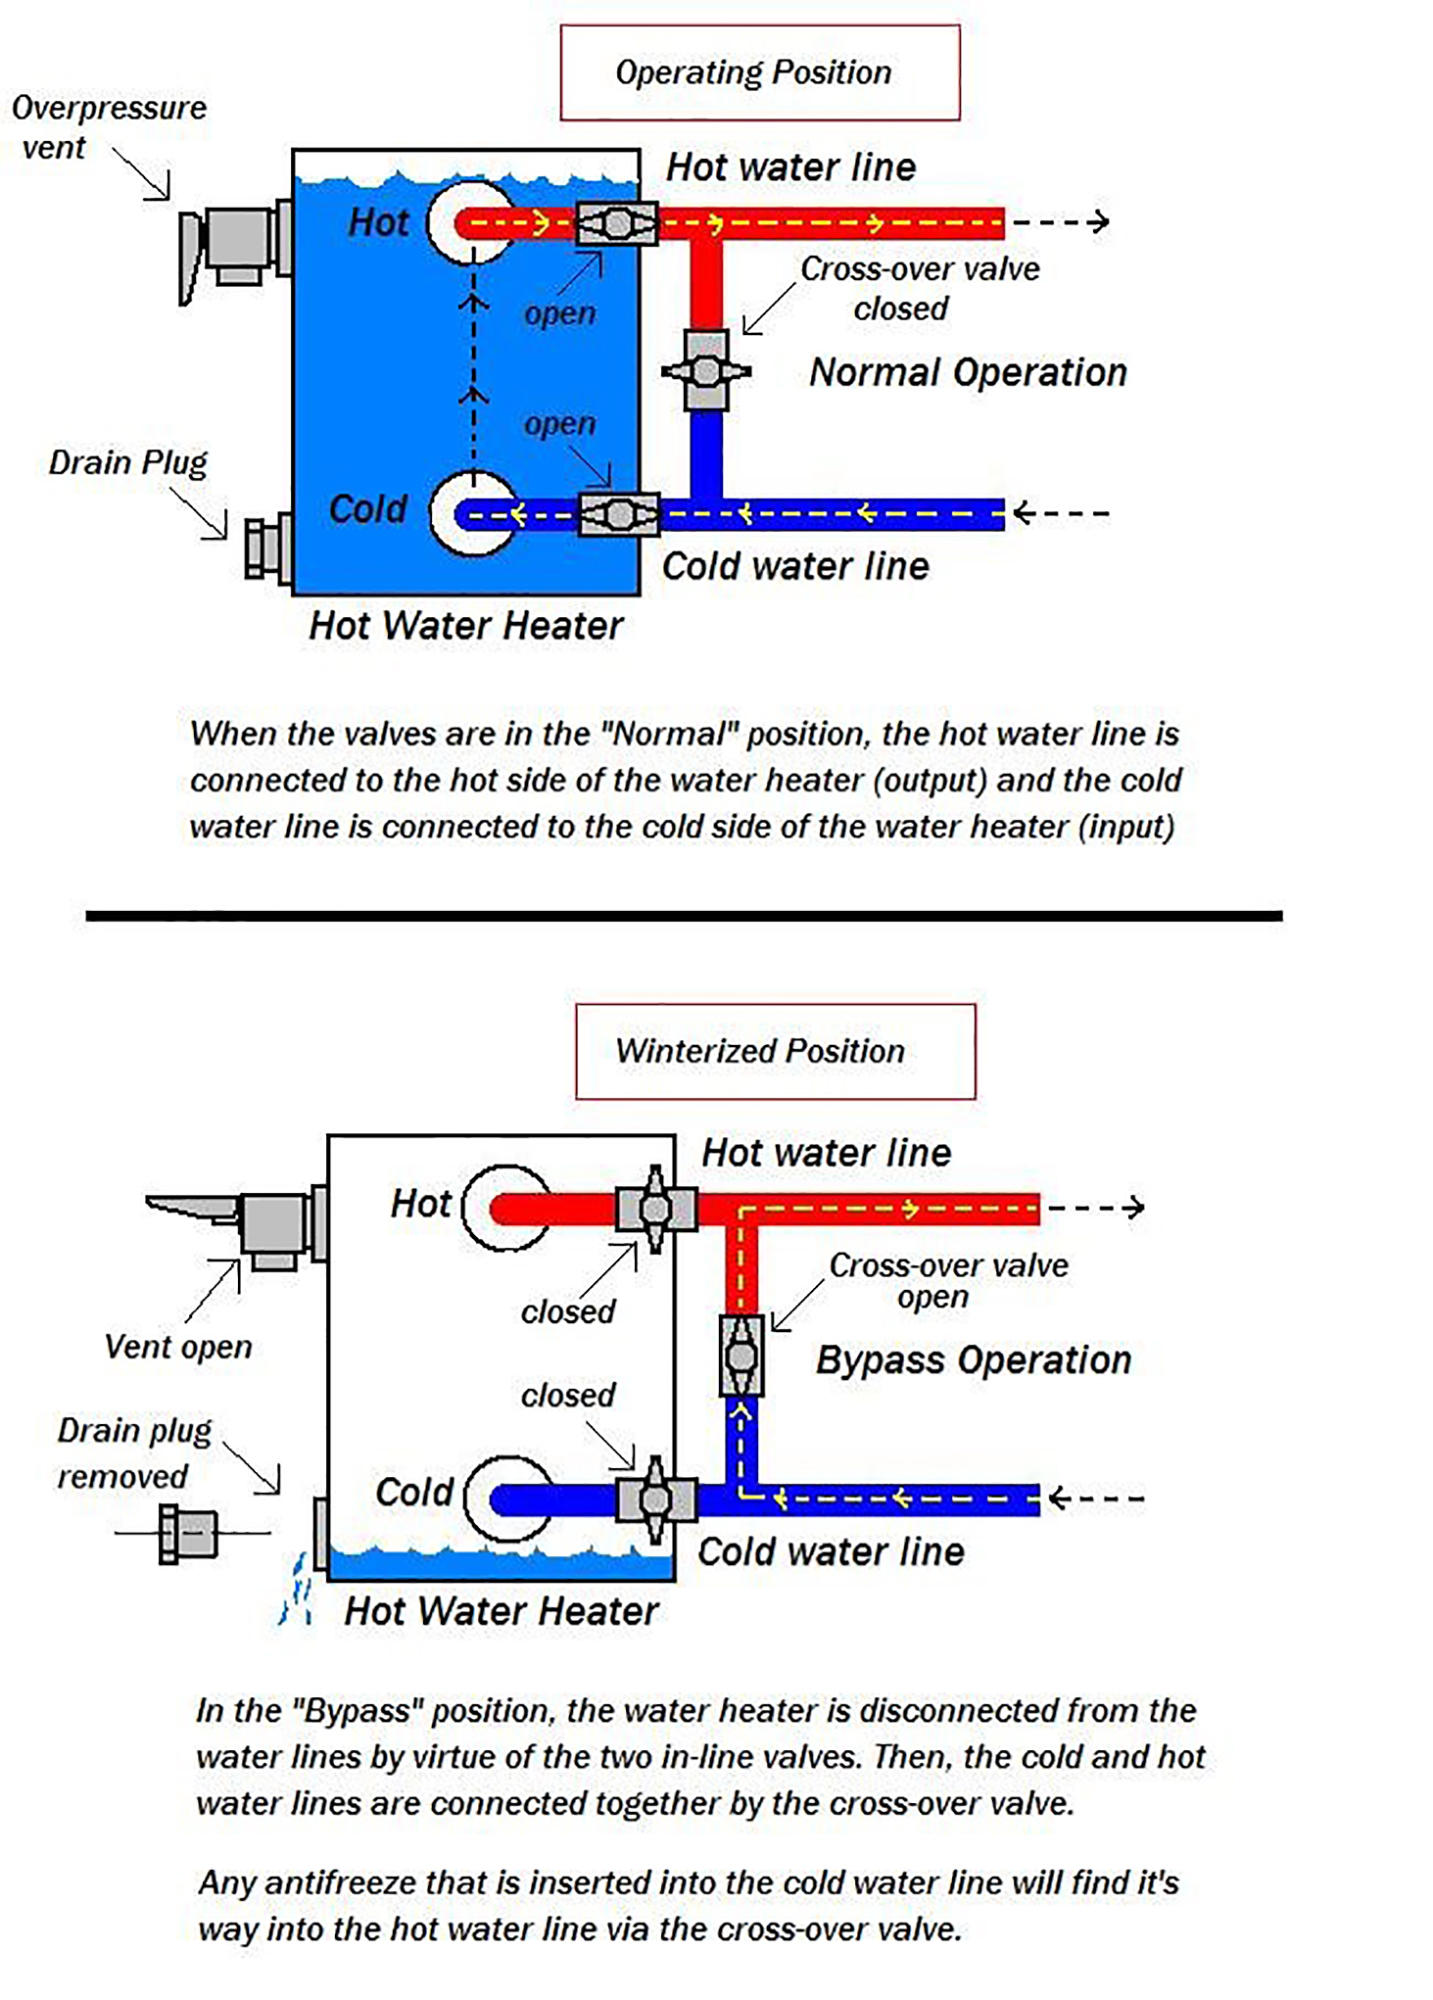 Forest River Water Heater Bypass Manual Guide